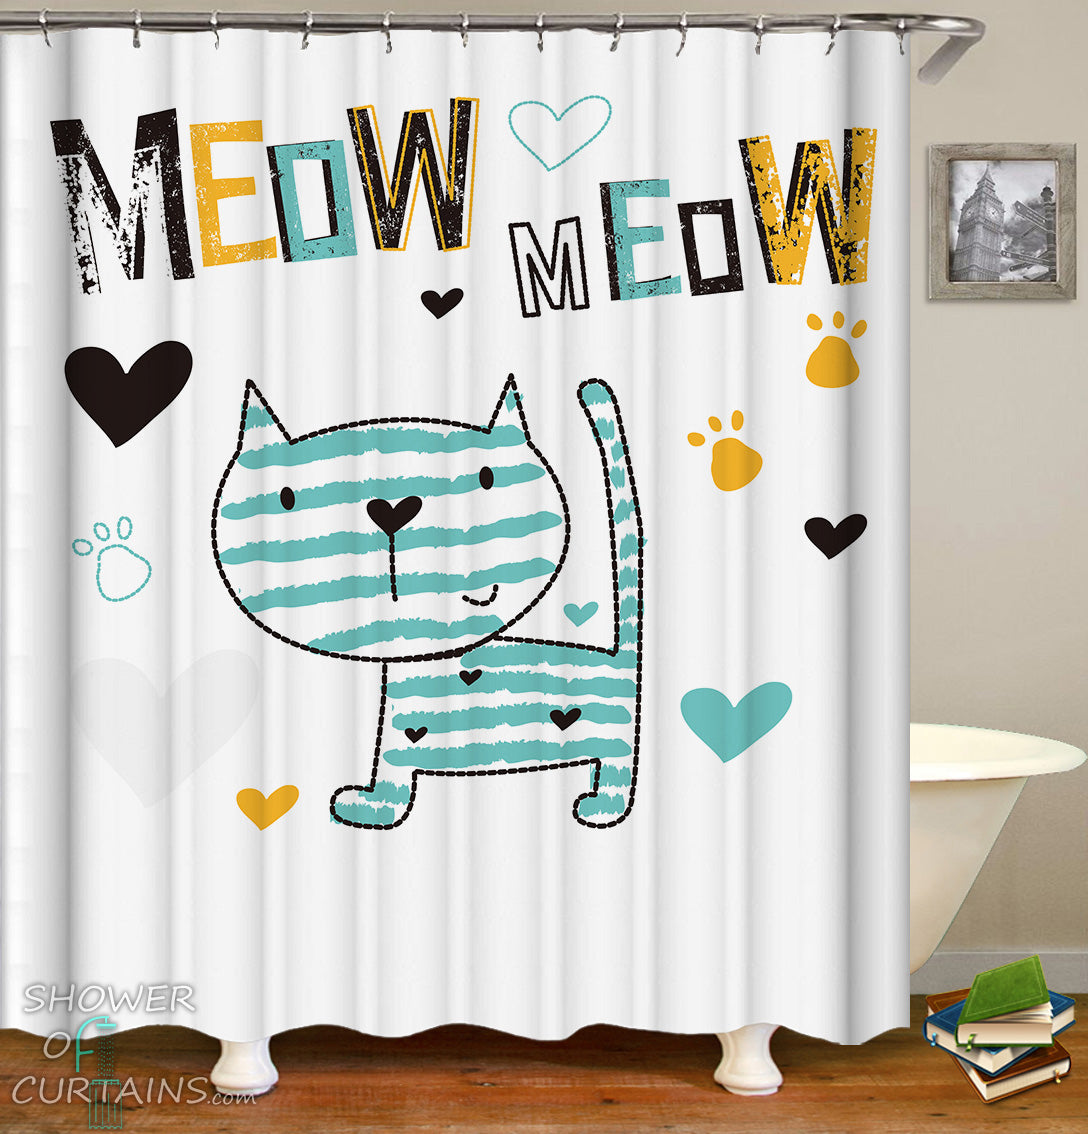 Shower Curtains Meow Cute Cat Drawing Shower Of Curtains